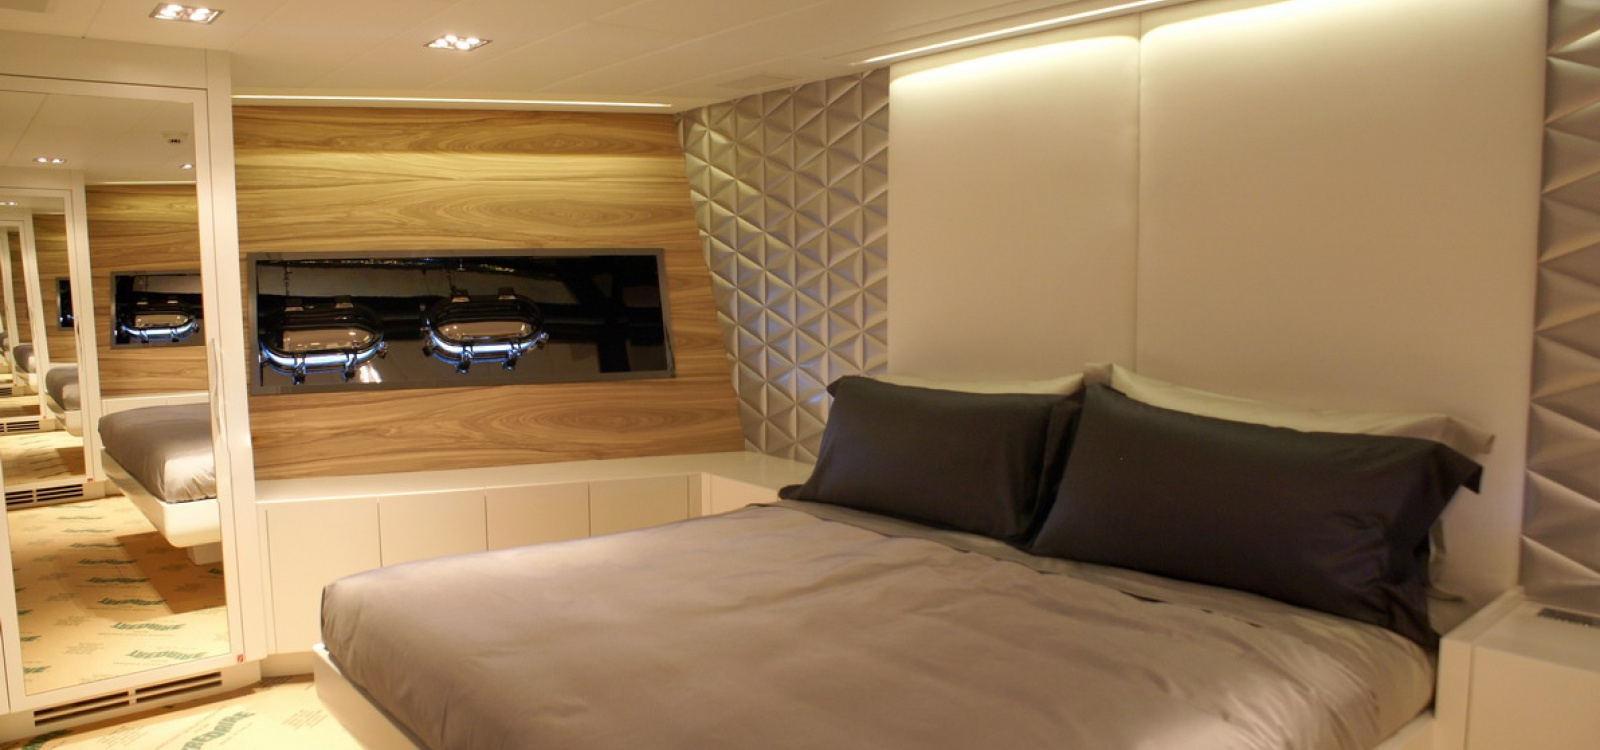 4 Rooms, Motor Yacht, For Charter, 6 Bathrooms, Listing ID 1047